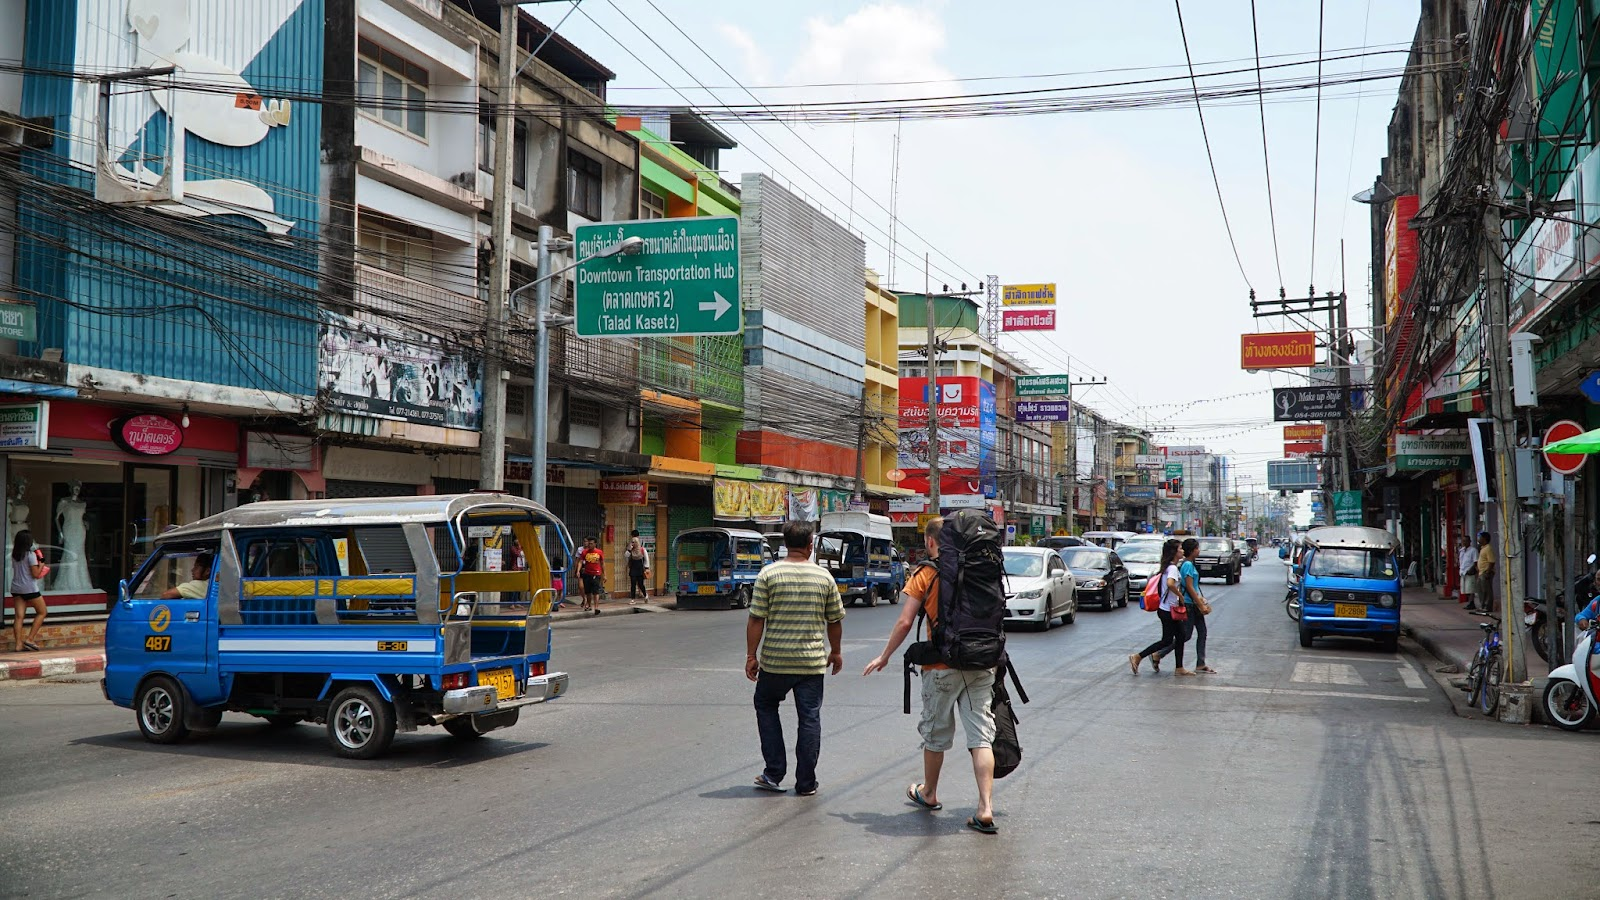 Spent a brief time in Surat Thani town